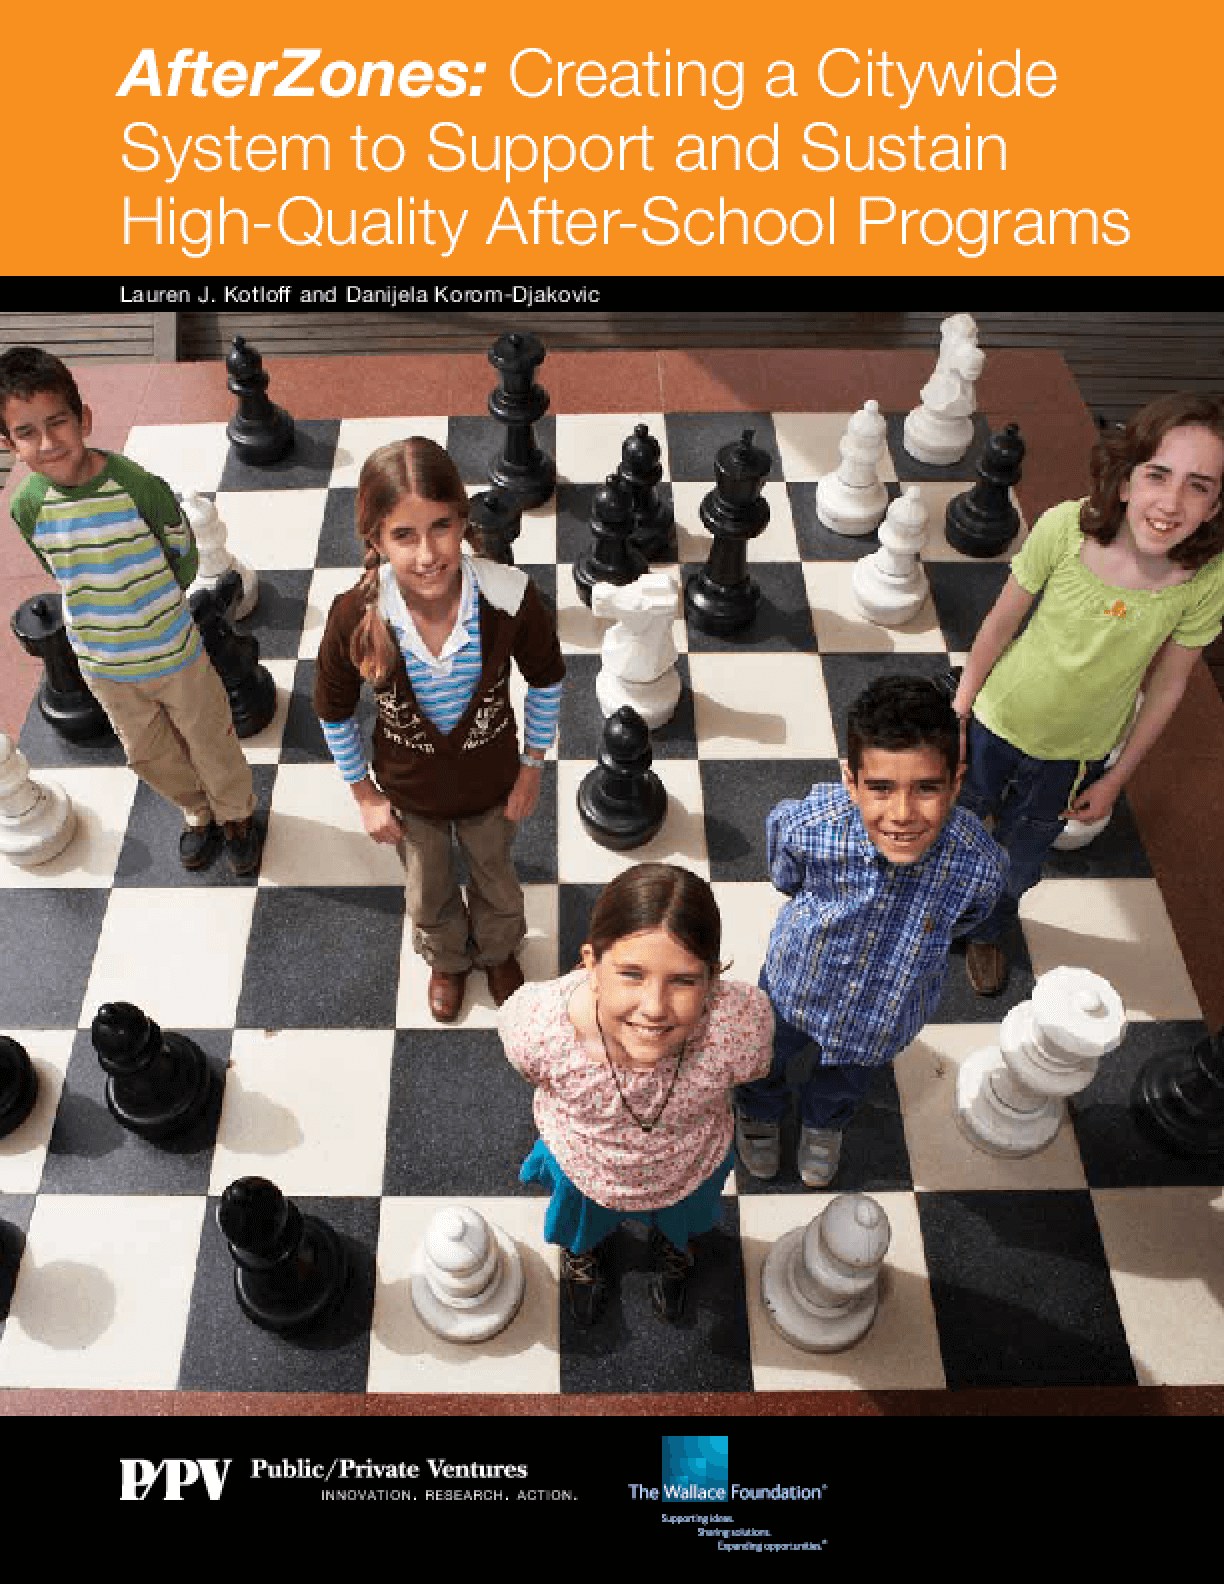 AfterZones: Creating a Citywide System to Support and Sustain High-Quality After-School Programs